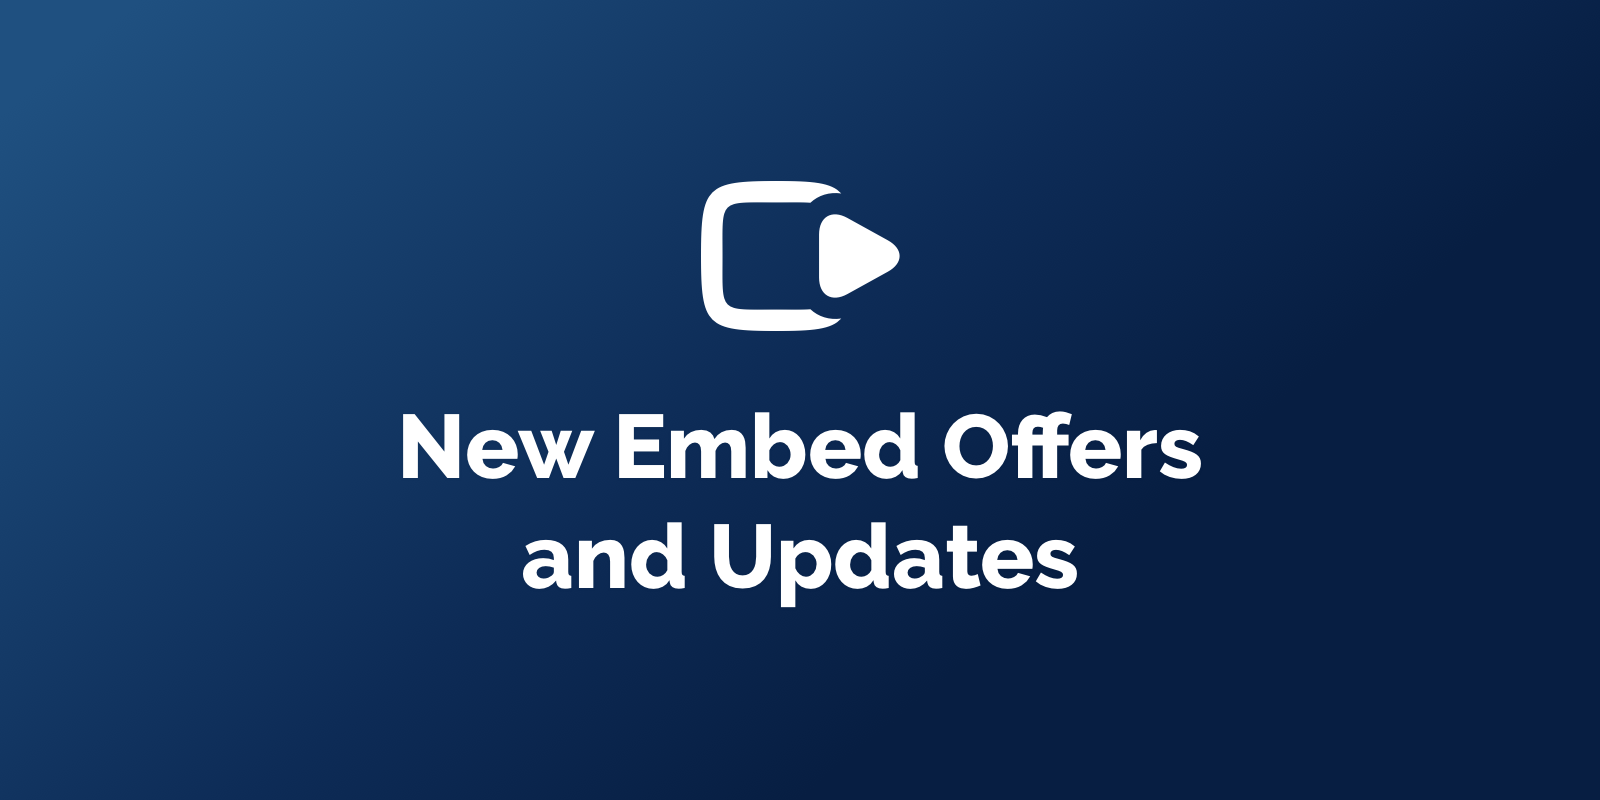 New Embed Updates and Offer